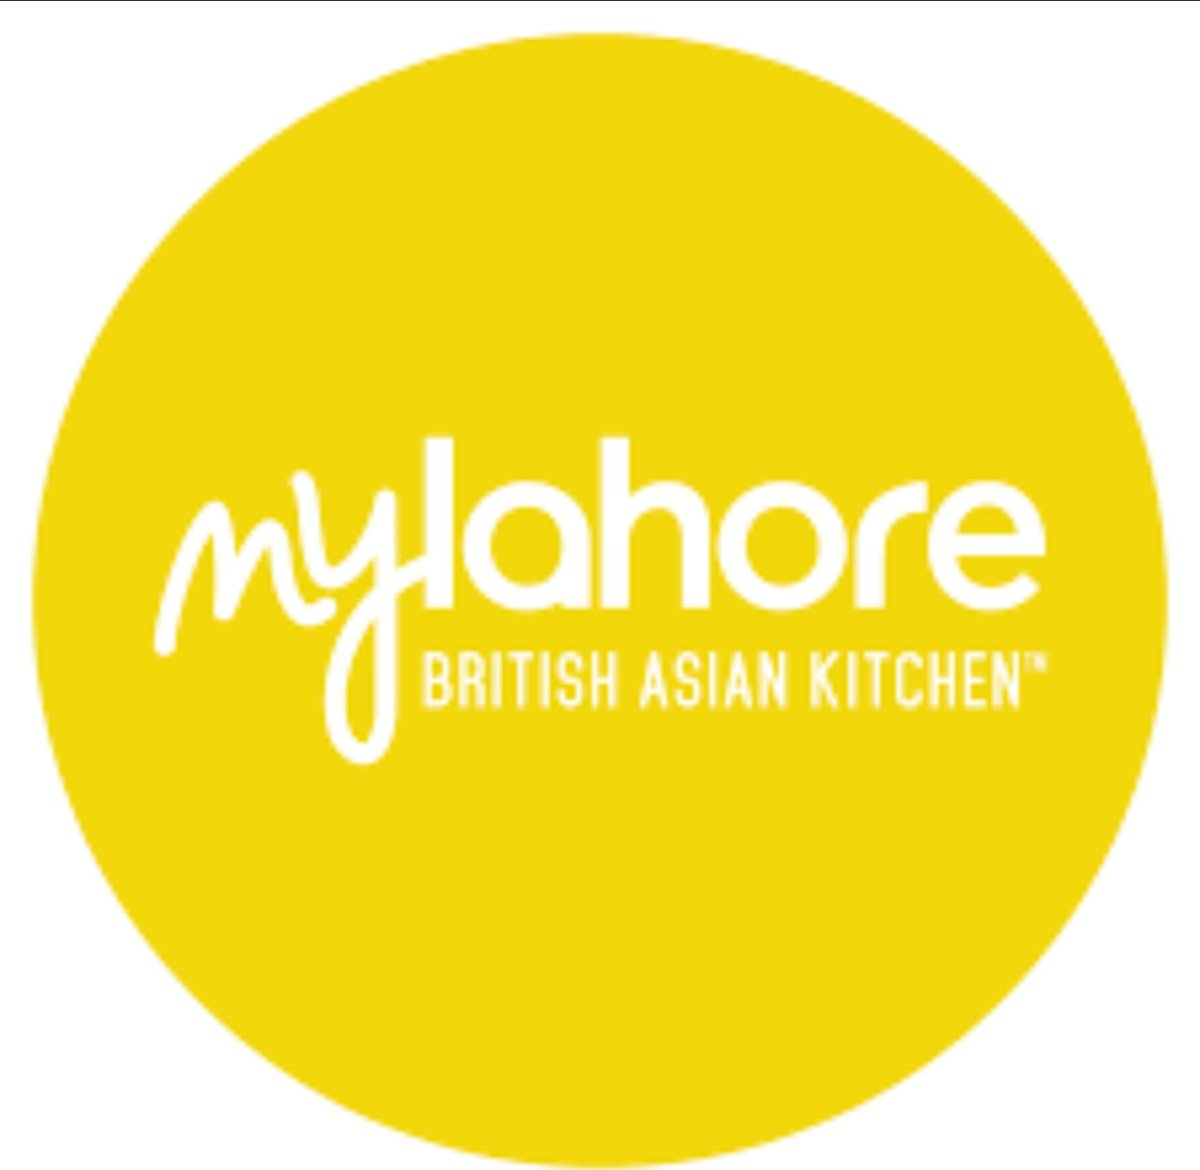 MACFest welcomes MyLahore to our festival. MyLahore served a unique blend of British Asian food. Welcome! Marhaba!  #macfestuk #mylahore #celebrate #Manchester #arts #festival #culture